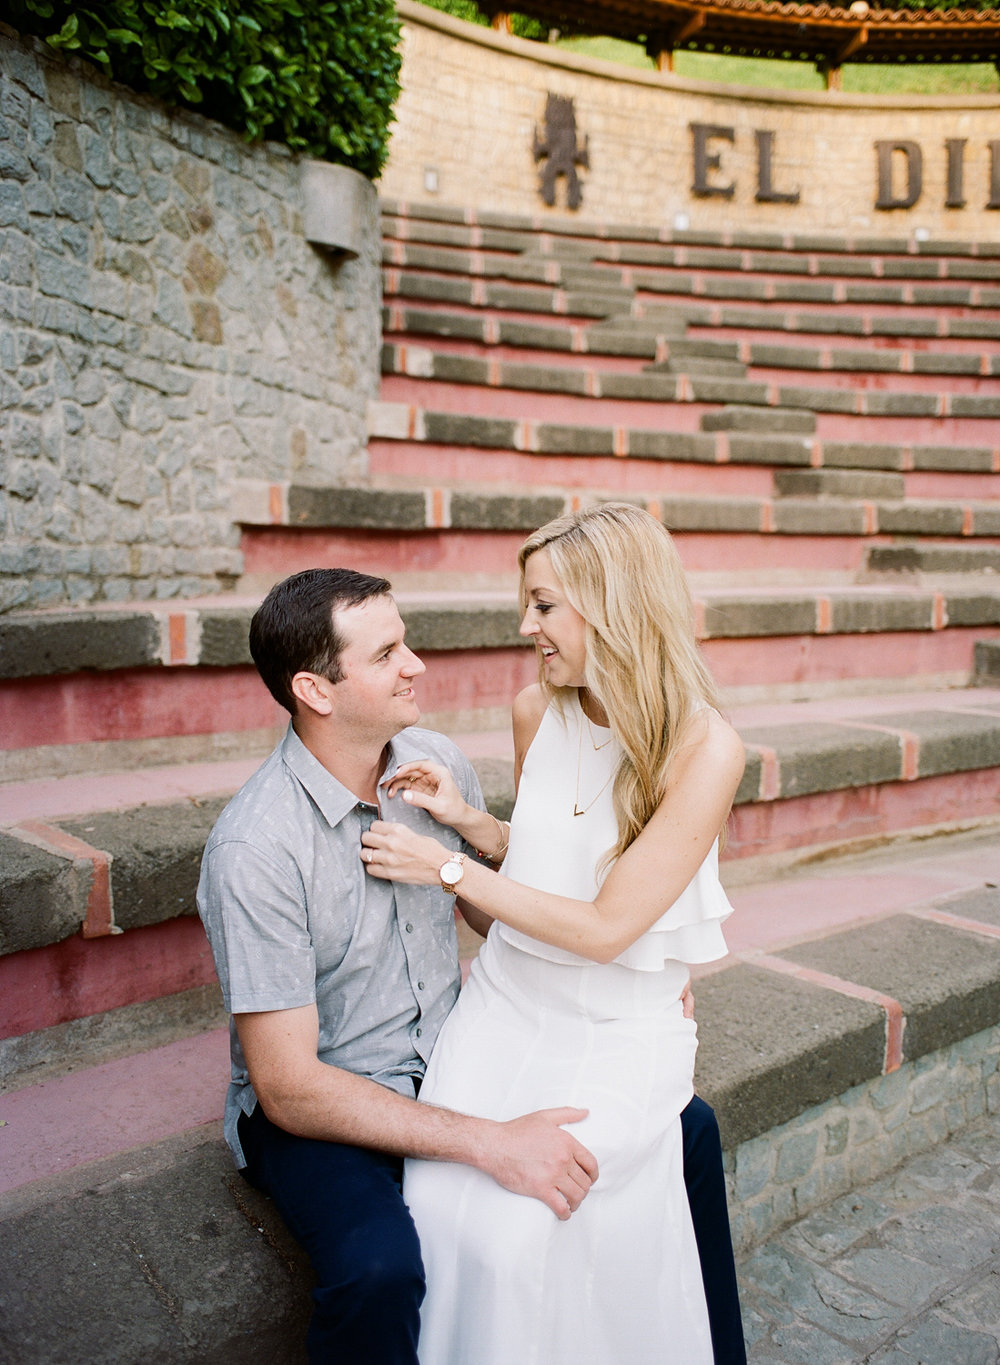 Plya Conchal Costa Rica Wedding Film Photography17.jpg